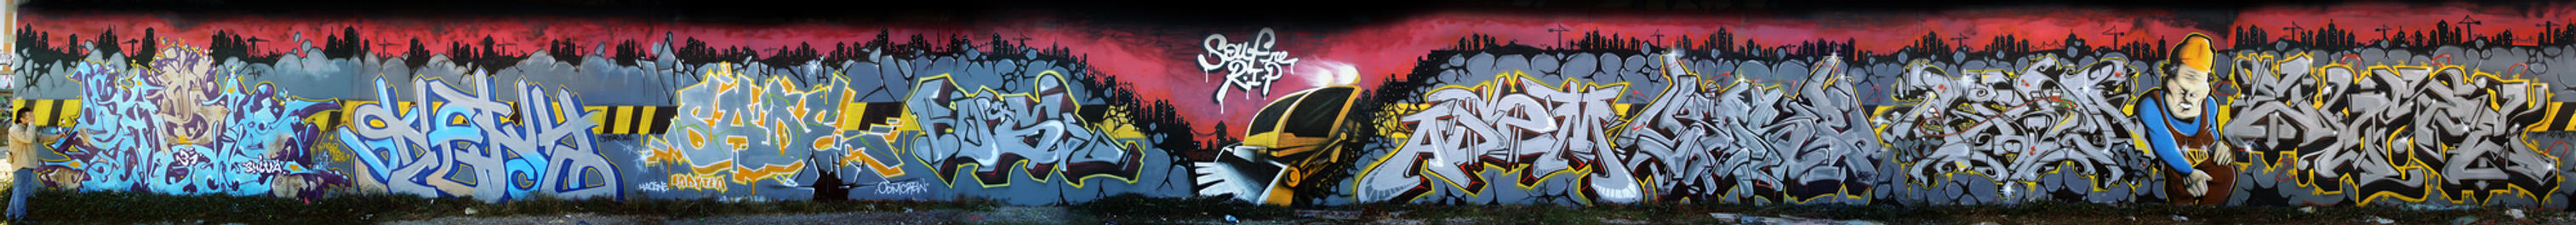 Soufre R.I.P by c4rl